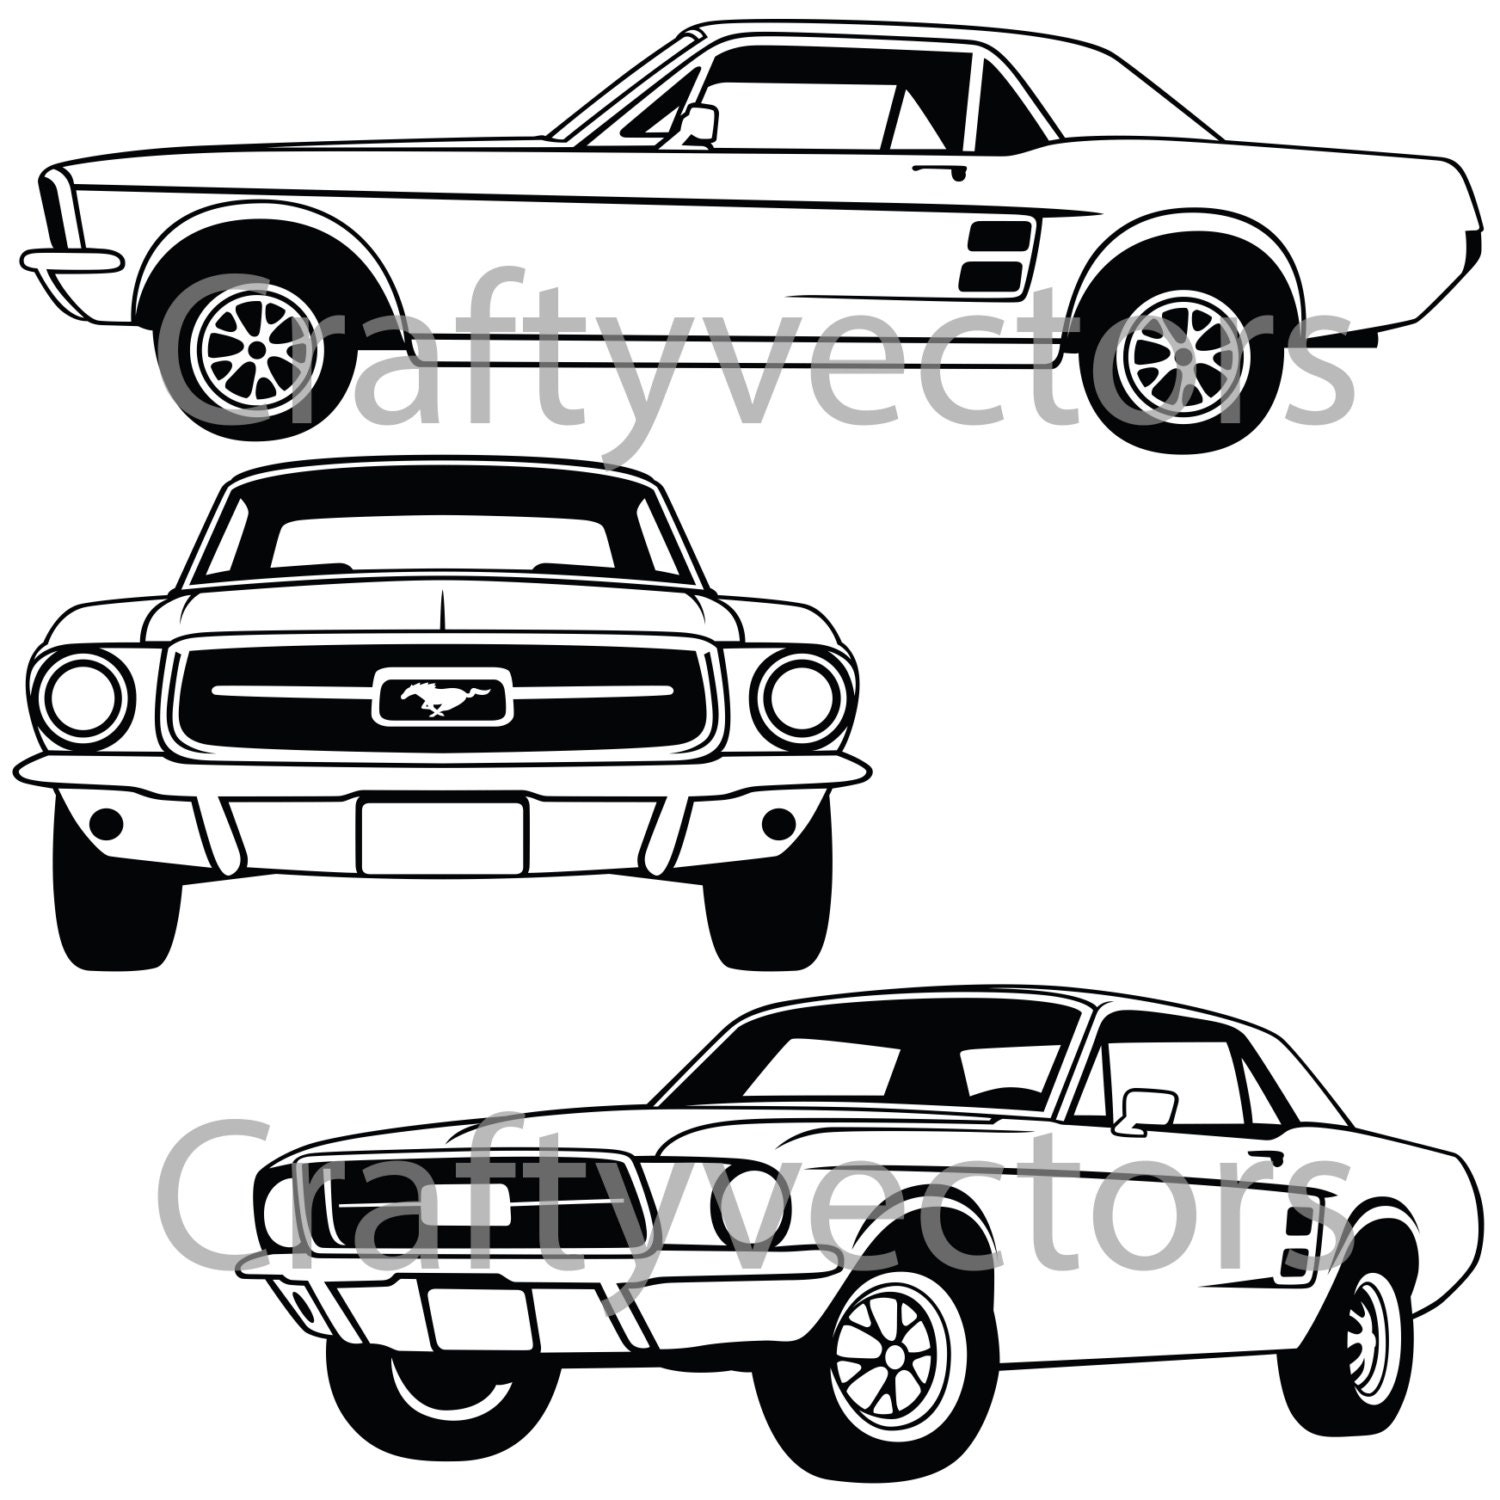 Ford Mustang 67 Coupe Vector File